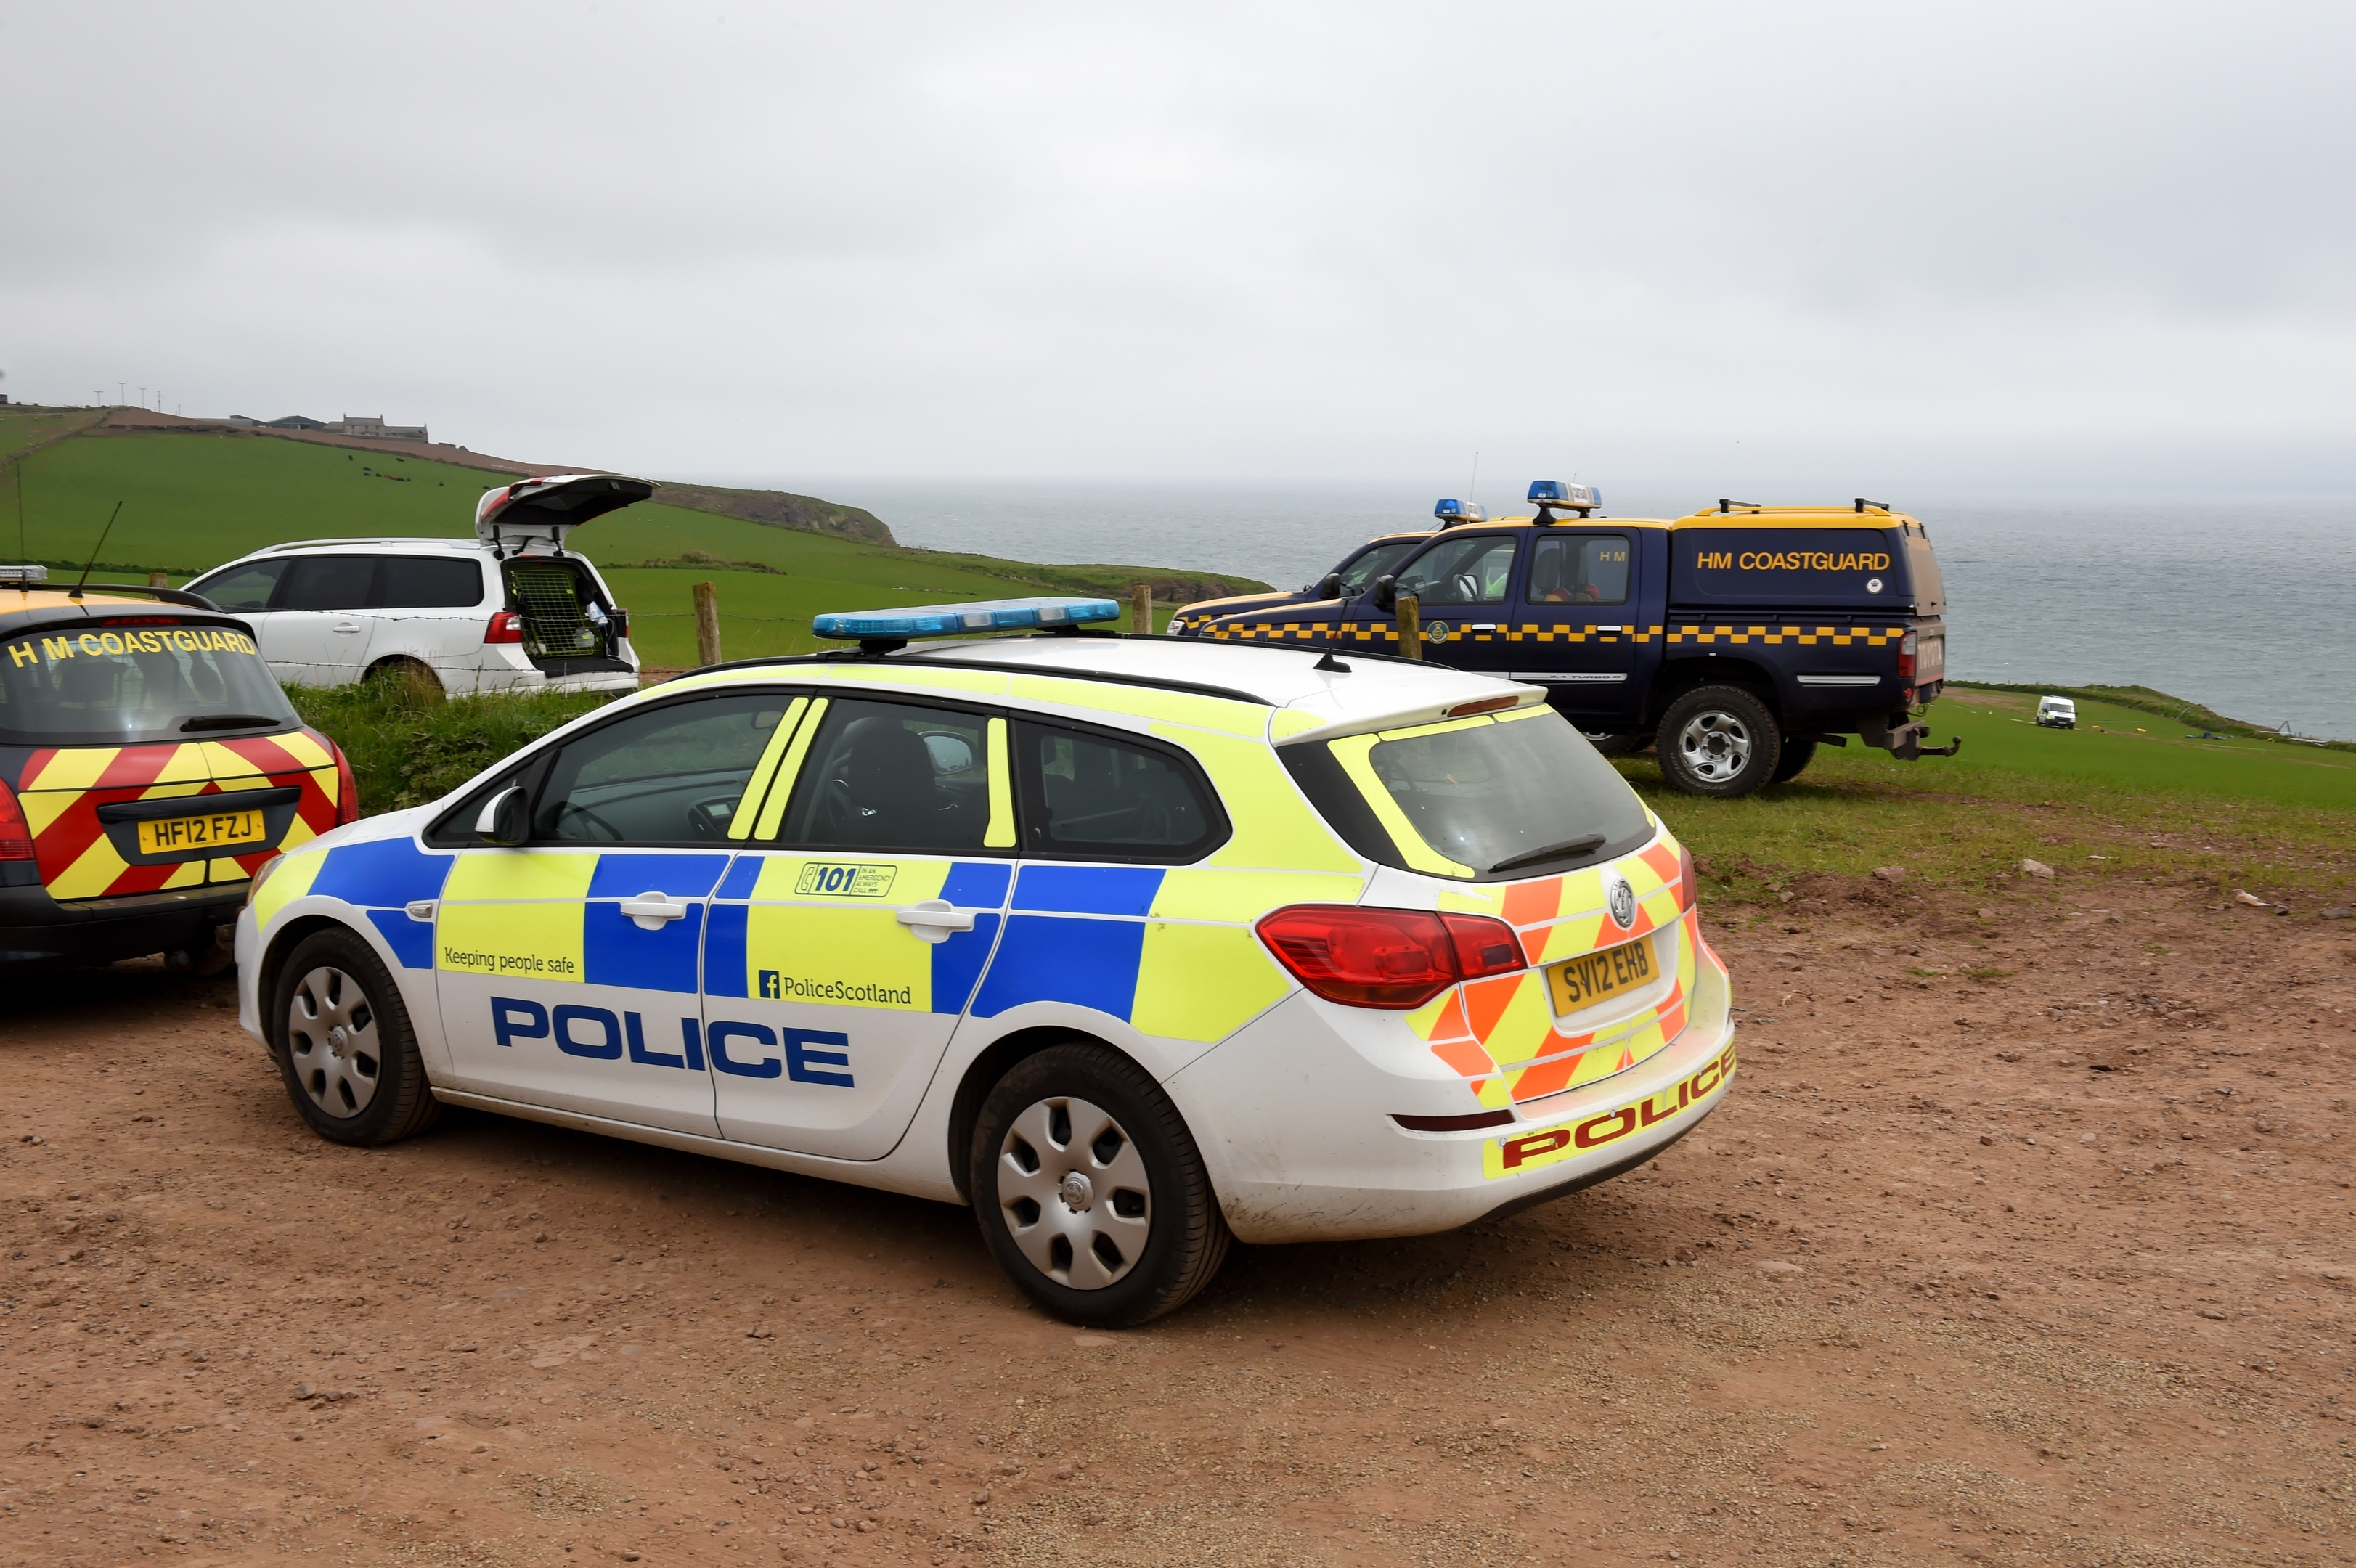 Police Scotland, the Scottish Ambulance Service, Aberdeen Coastguard and Stonehaven RNLI were called to the cliffs at Whistleberry Farm, Kinneff, near Inverbervie. Picture by KENNY ELRICK 27/05/2016